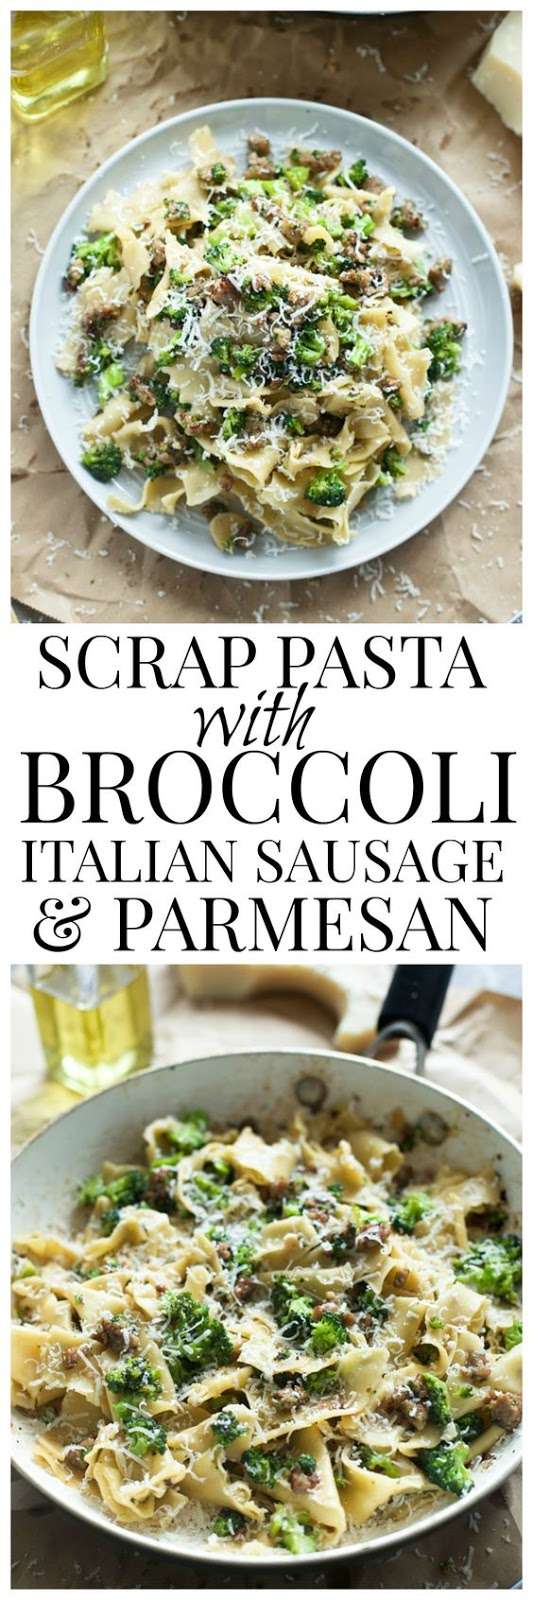 SCRAP PASTA WITH BROCCOLI, ITALIAN SAUSAGE AND PARMESAN